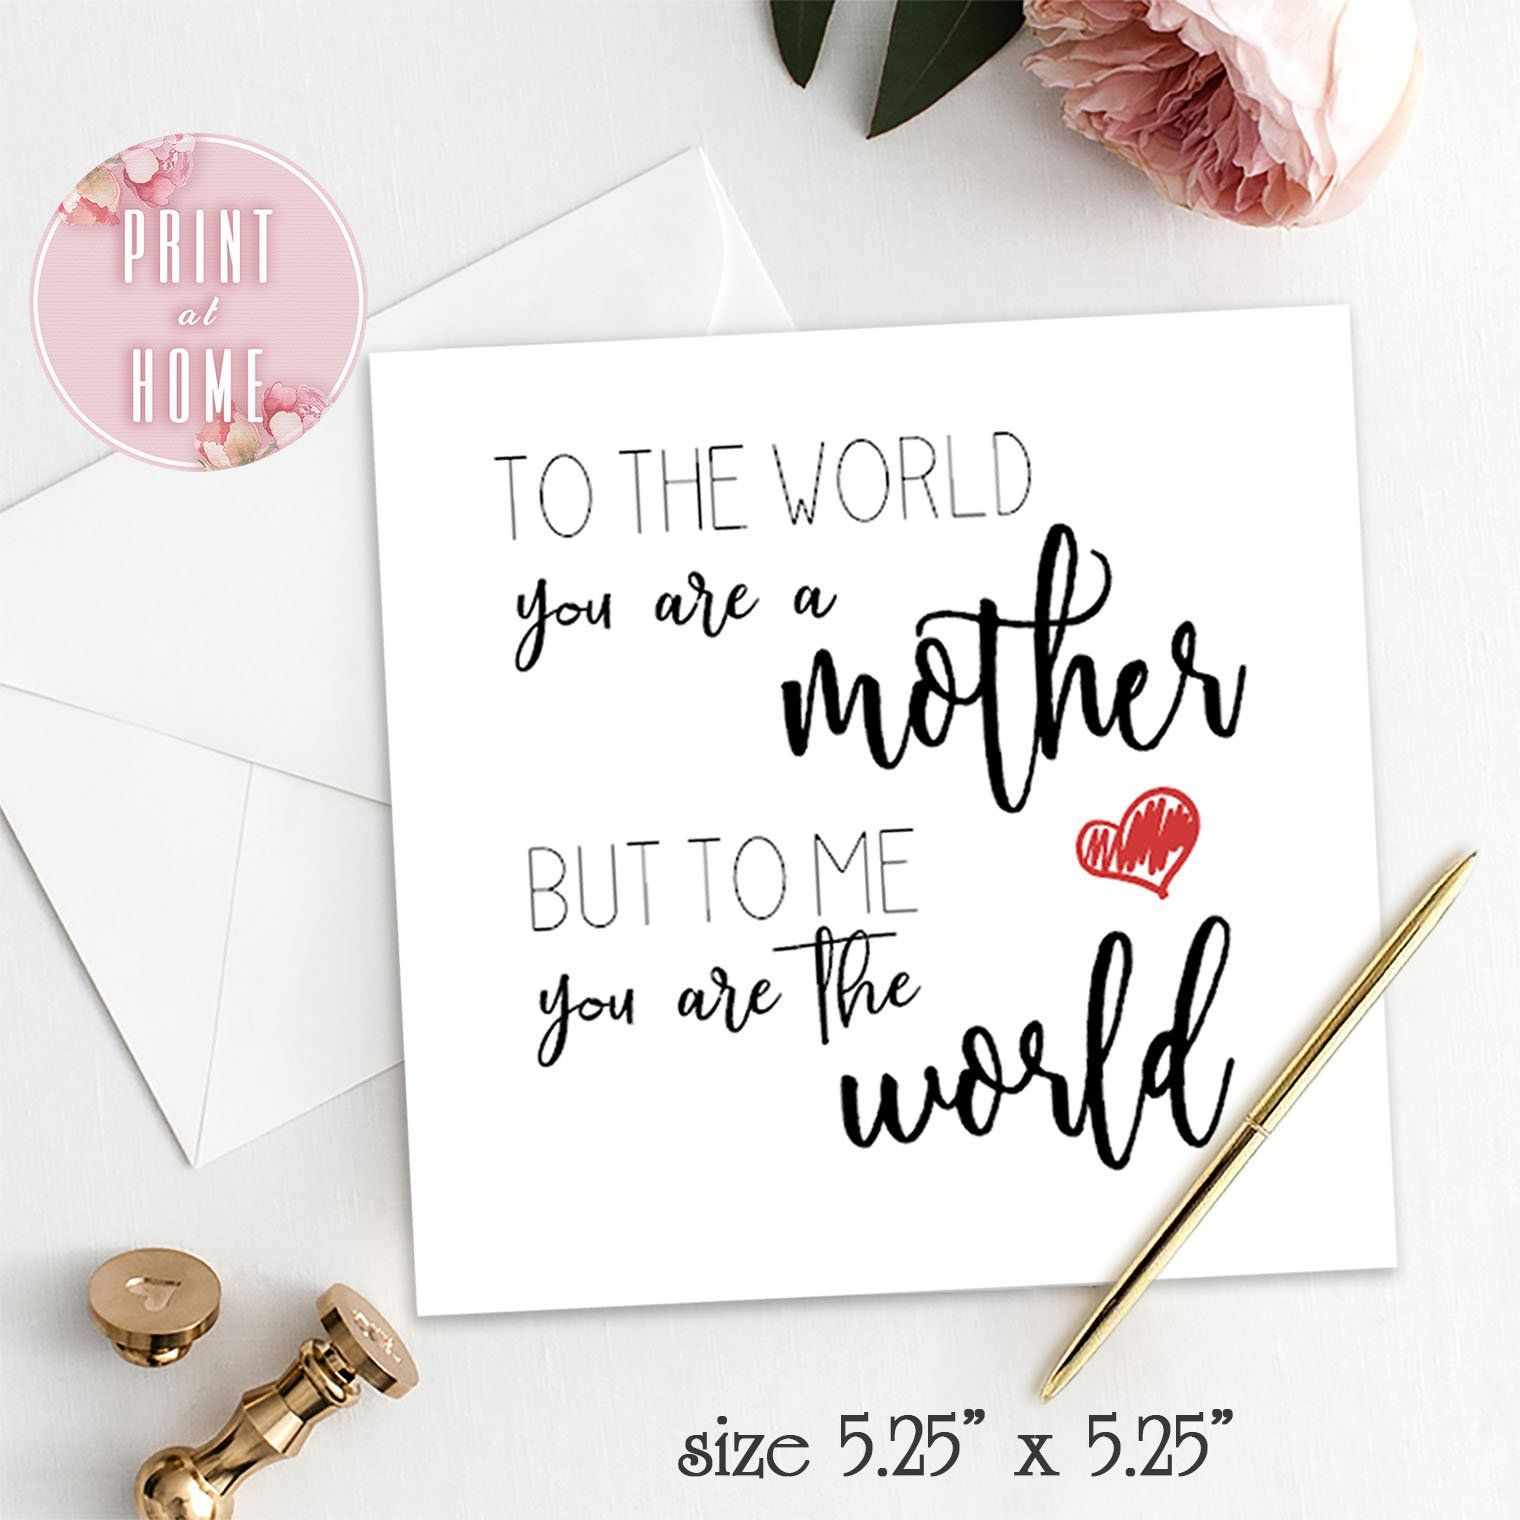 Printable Card For Mom Birthday From Daughter To Mother From Son To Mother Diy Birthday Cards For Mom Diy Birthday Gifts For Mom Birthday Cards For Mother